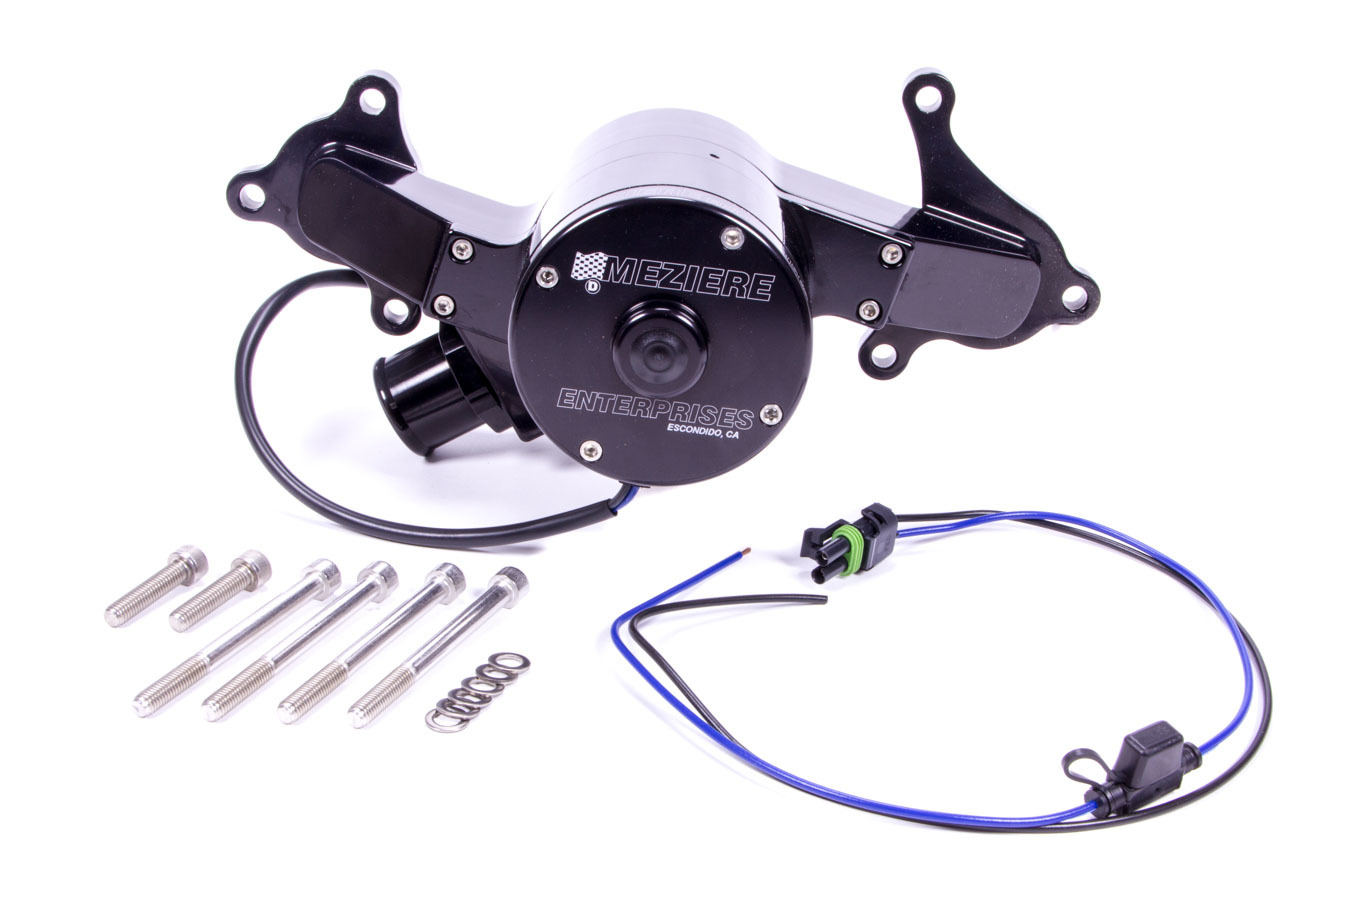 Meziere WP314S Water Pump, Electric, High Flow 300 Series, 1-1/2 in Hose Barb Inlet, Gasket / Hardware / Wiring, Aluminum, Black Anodized, Mopar Gen III Hemi, Kit